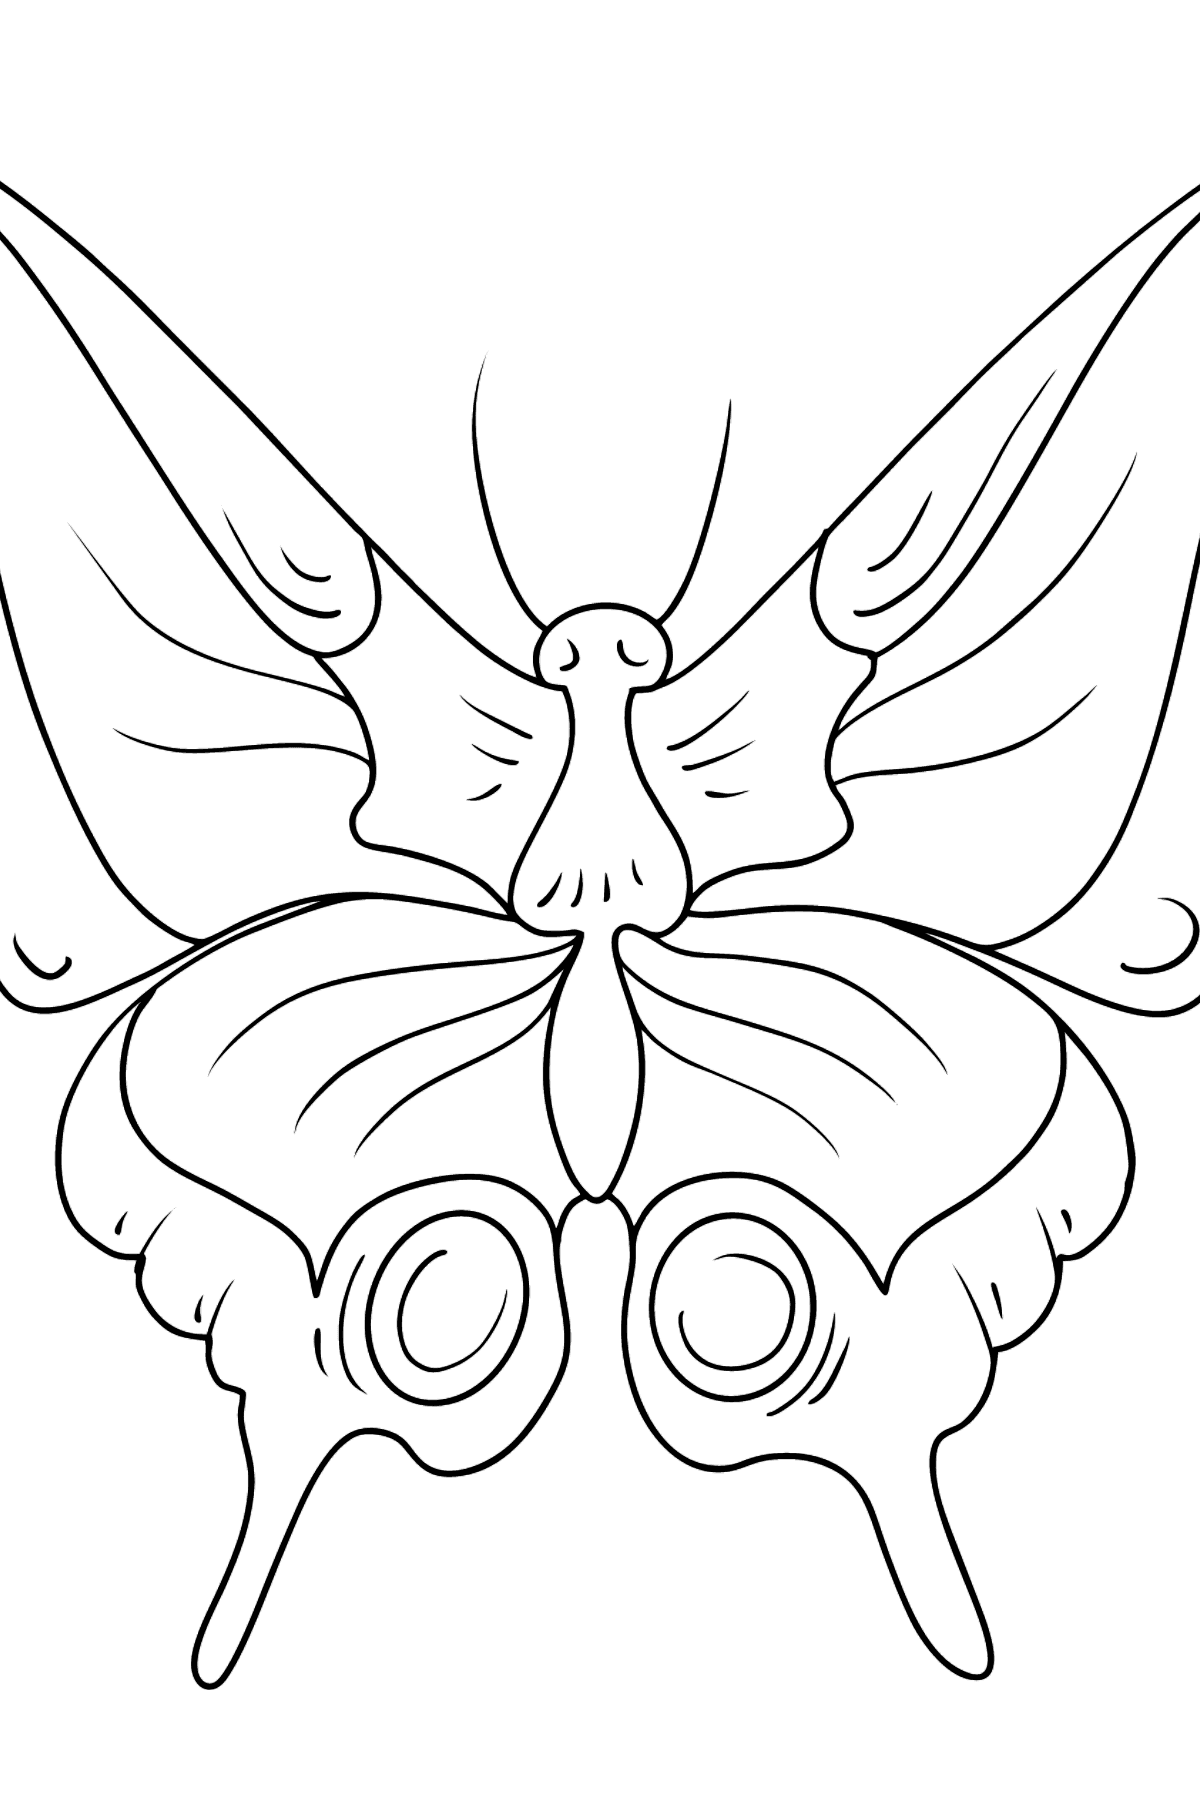 Swallowtail Butterfly coloring page - Coloring Pages for Kids